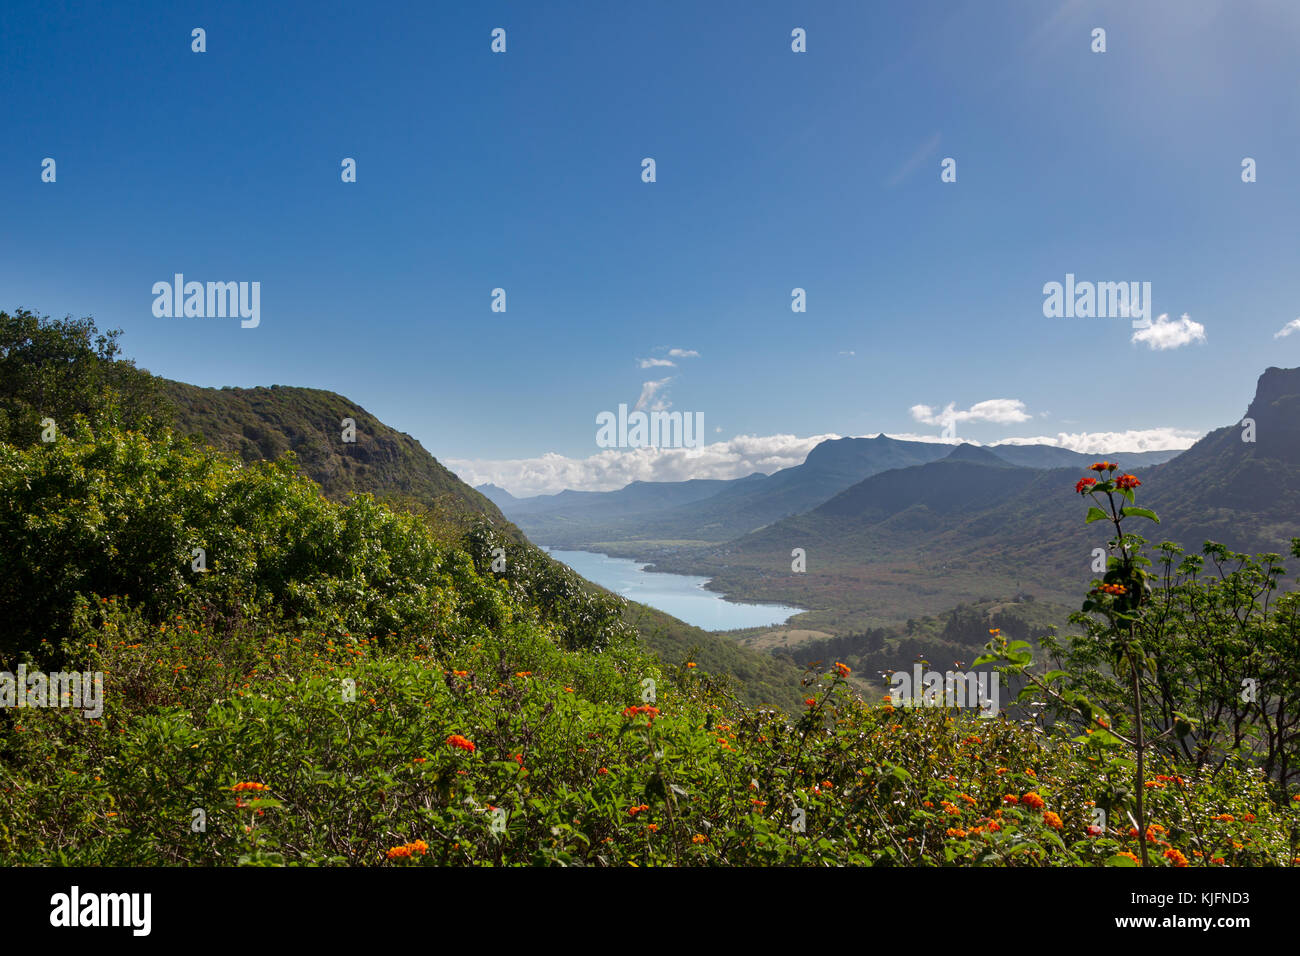 View from Le Morne Brabant onto the coast near La Gaulette at the south coast of Mauritius, Africa. - Stock Image